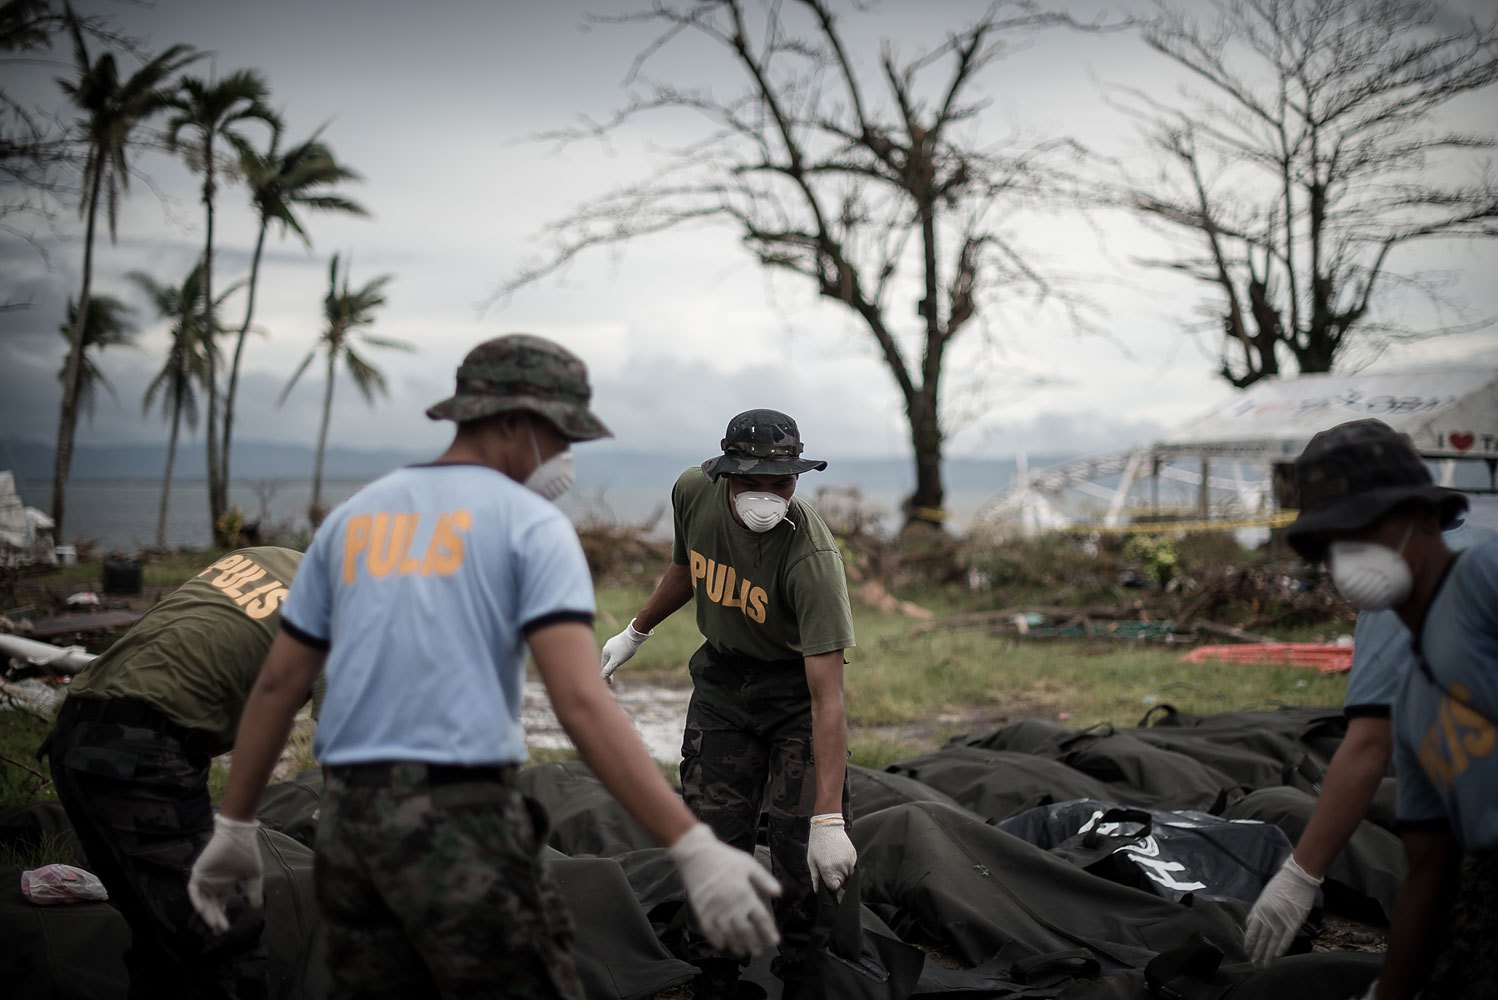 Dead bodies are unloaded at a makeshift morgue in Tacloban, on the eastern island of Leyte on November 12, 2013 after Super Typhoon Haiyan swept over the Philippines.